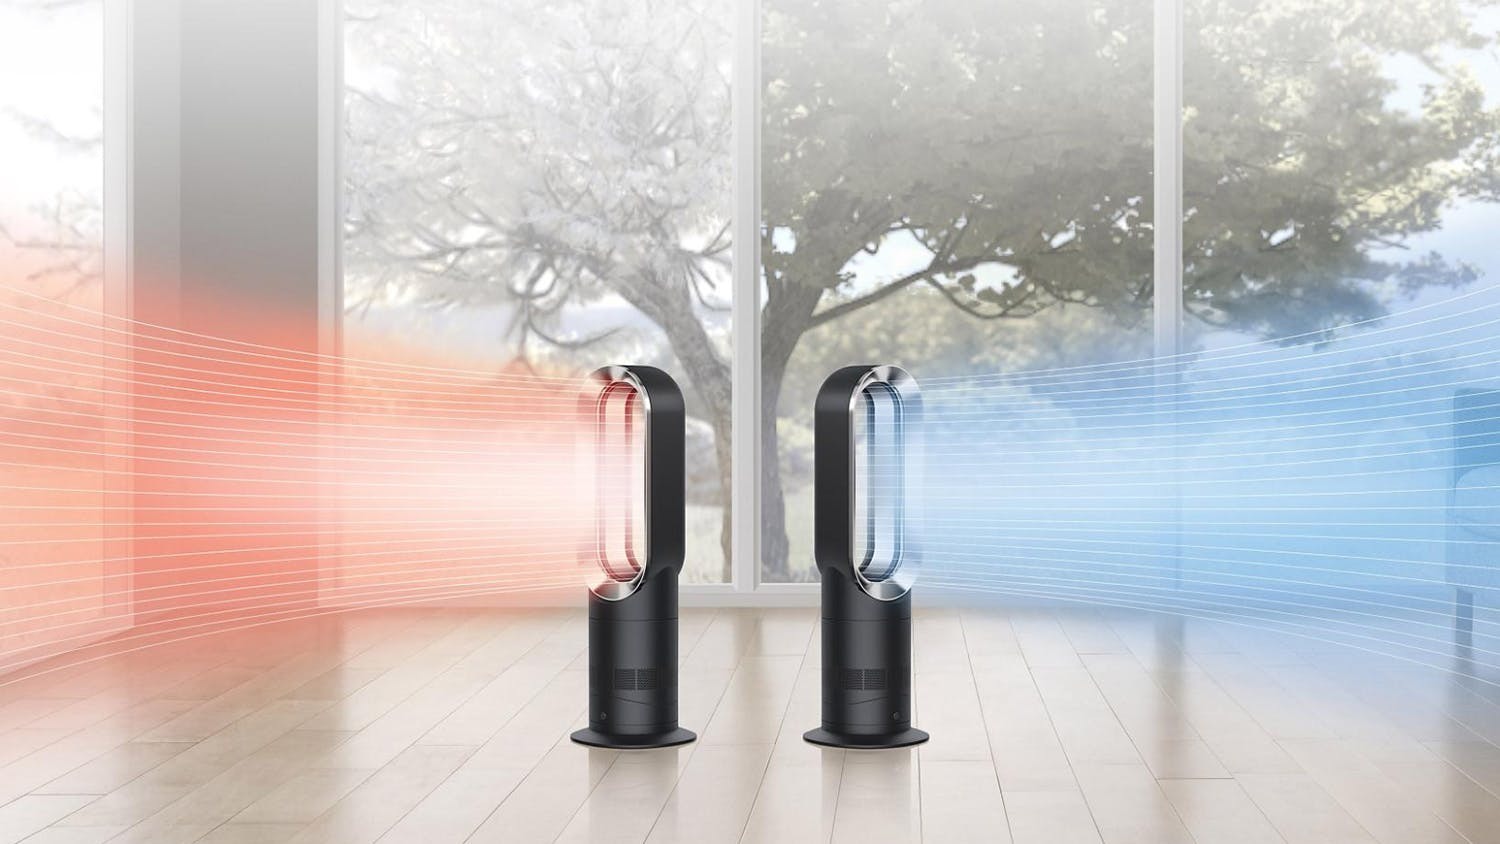 Dyson AM09 Air Multiplier Fan/Heater - Black/Nickel